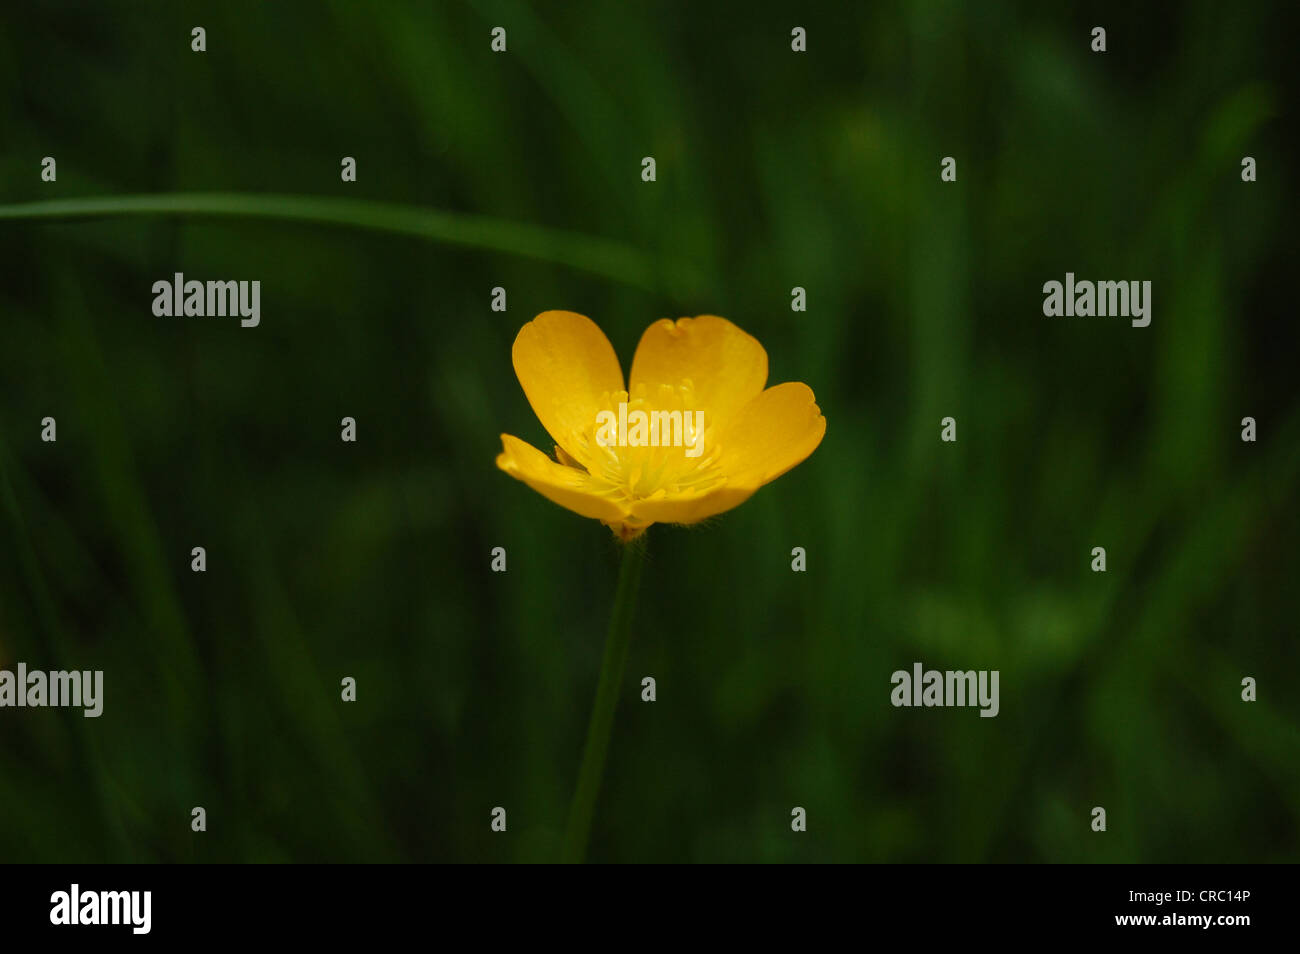 Buttercup, Ranunculus, with grass background, Scotland. - Stock Image